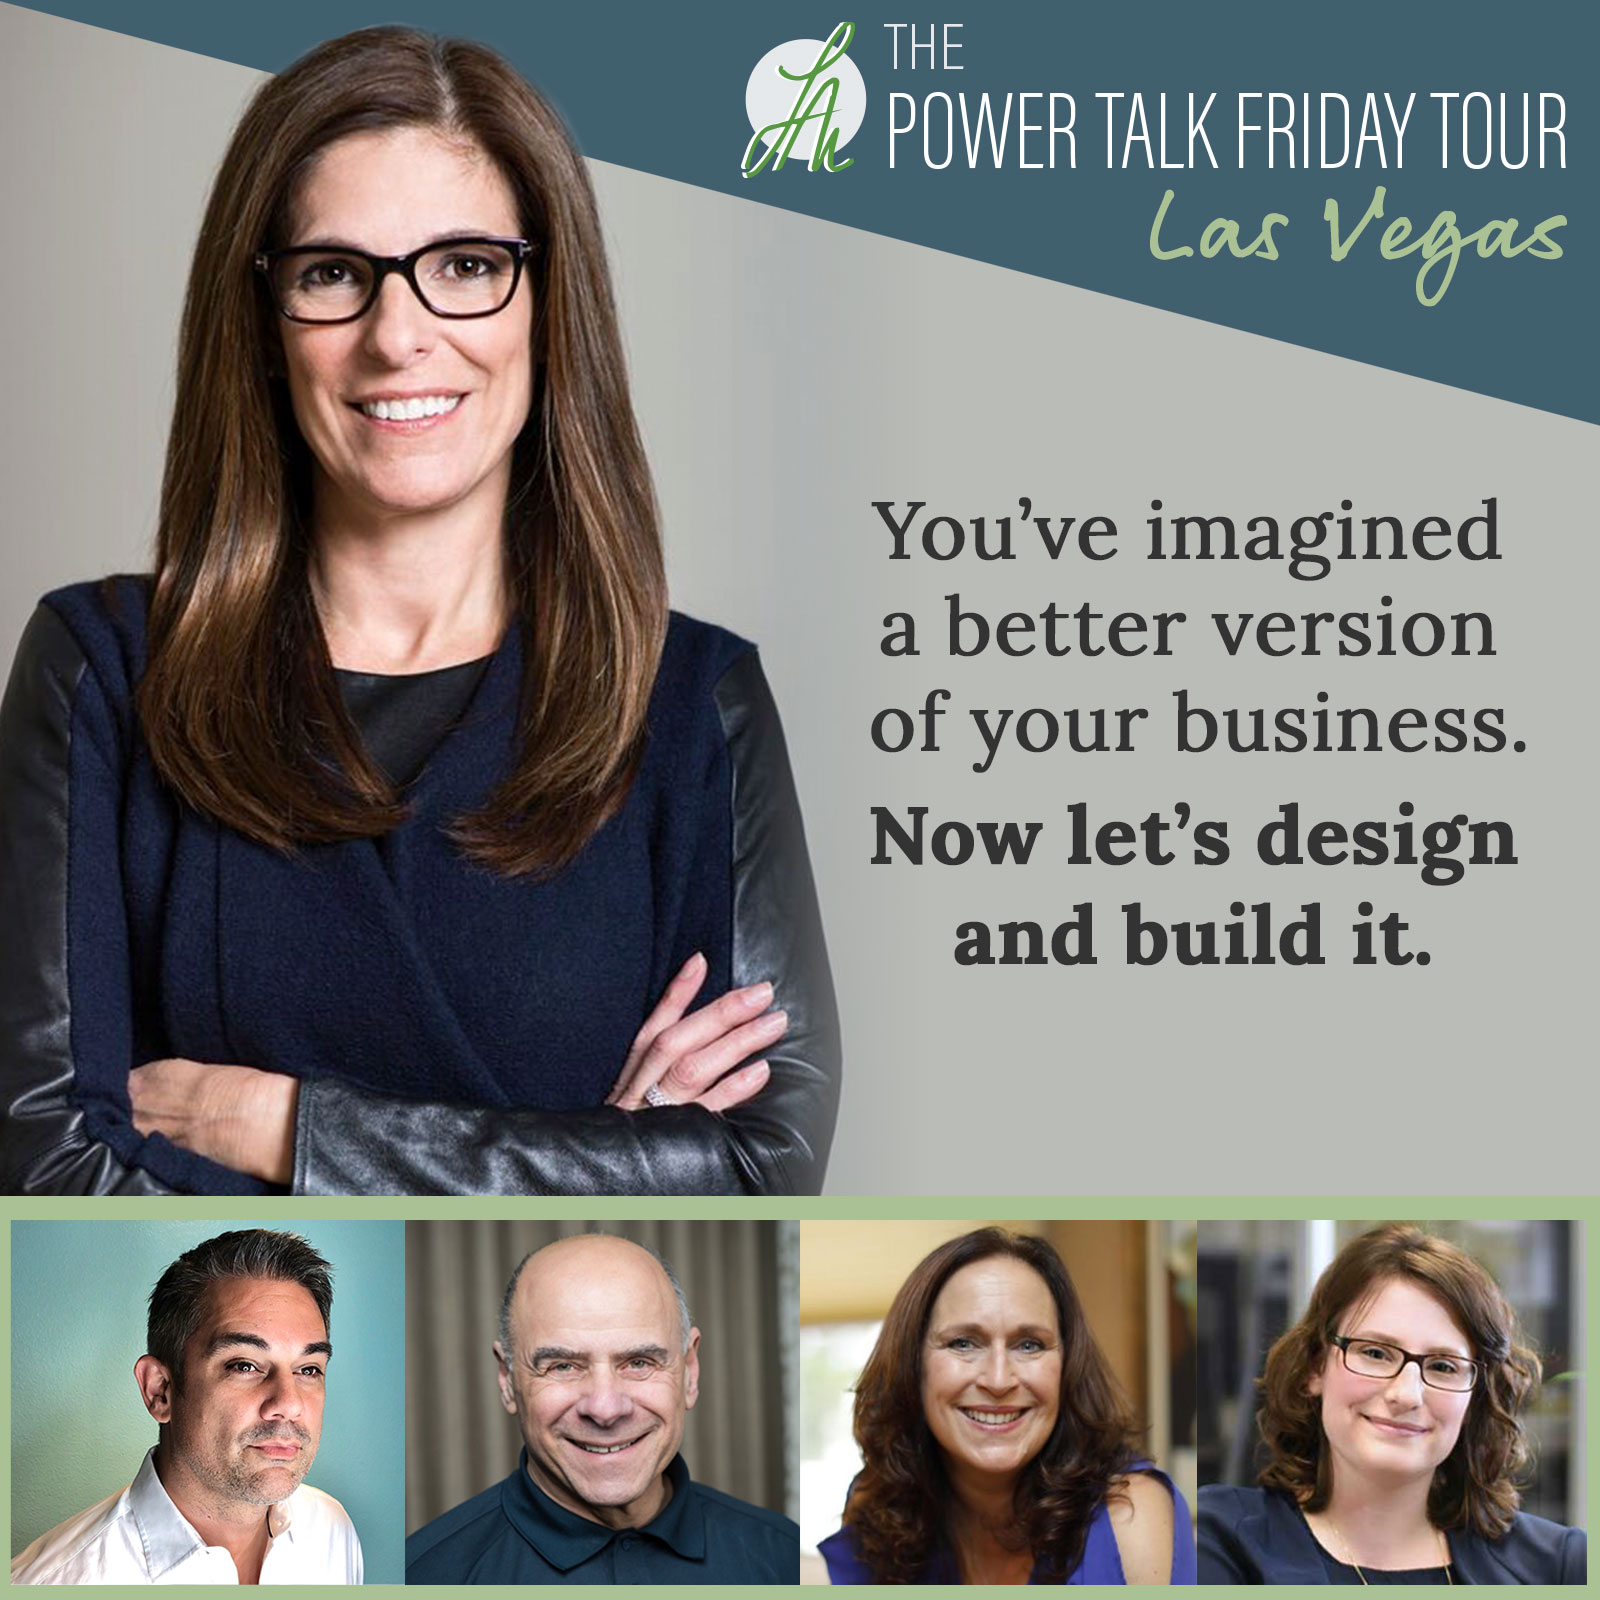 333: Power Talk Friday: Design and Build Your Interior Design Business